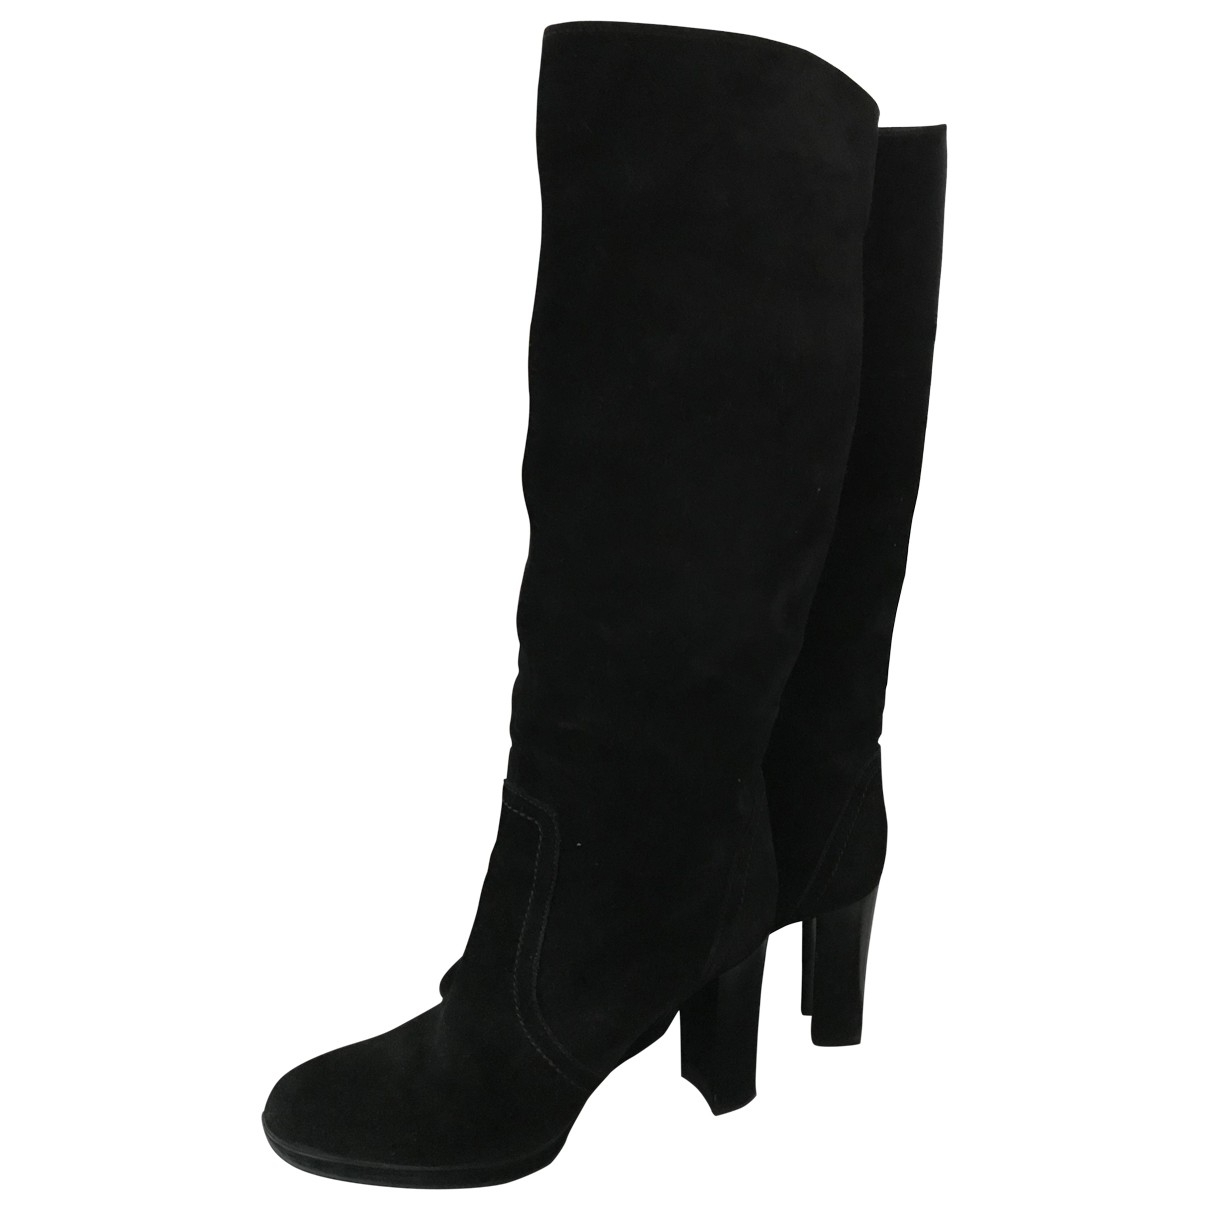 Sergio Rossi \N Black Suede Boots for Women 38 EU